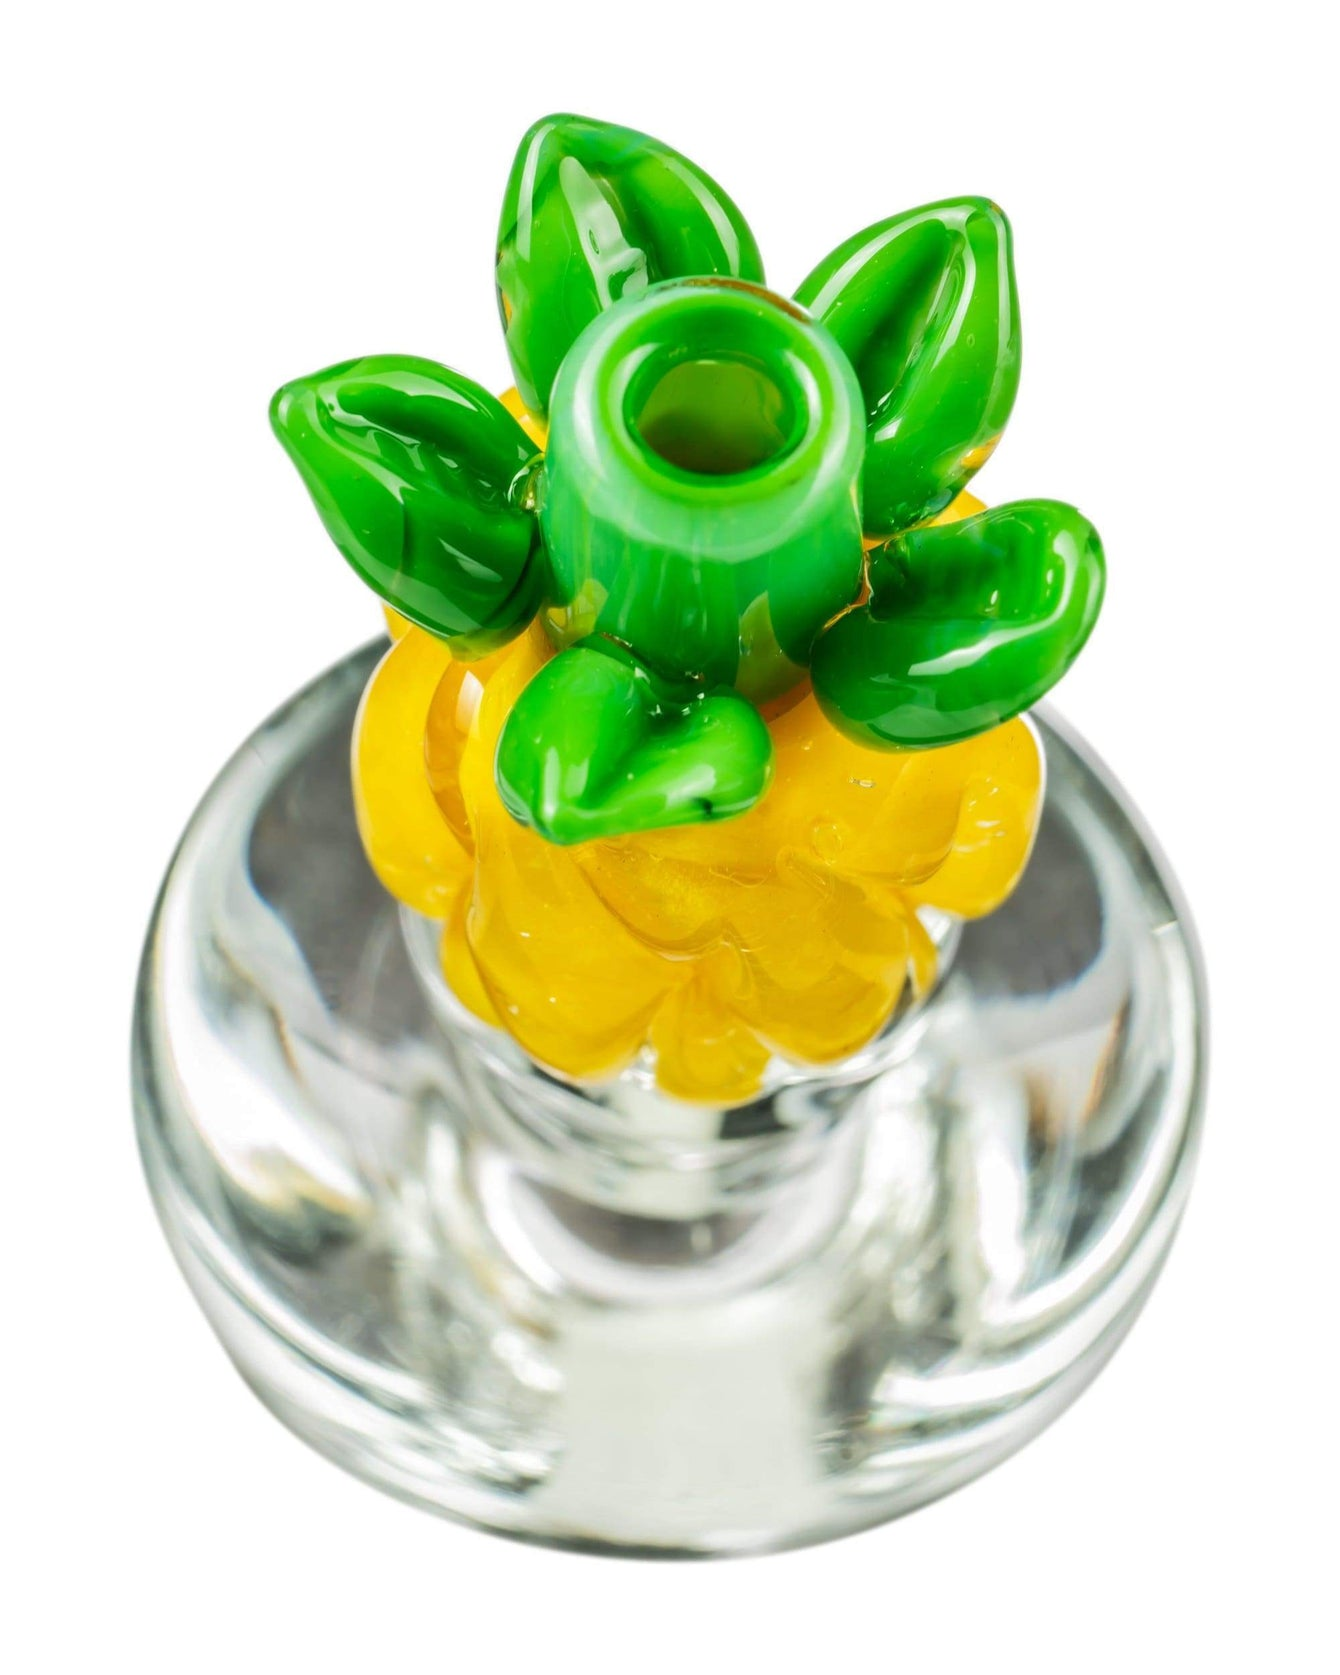 Pineapple Carb Cap for Puffco Peak